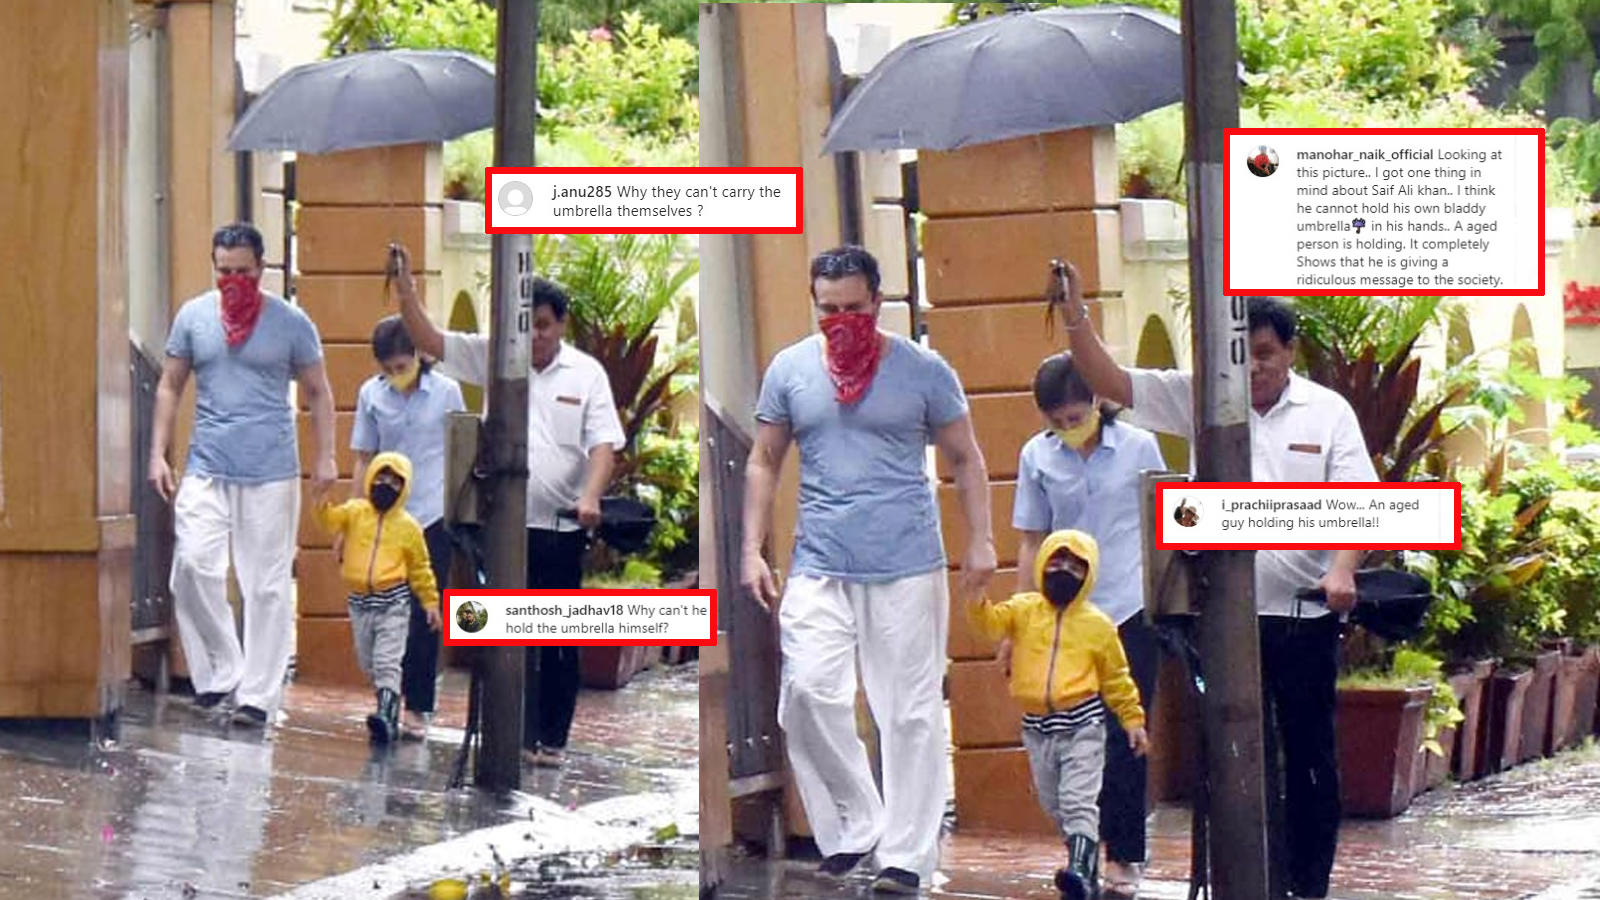 saif-ali-khan-gets-trolled-for-not-holding-his-own-umbrella-as-he-steps-out-in-rain-with-son-taimur